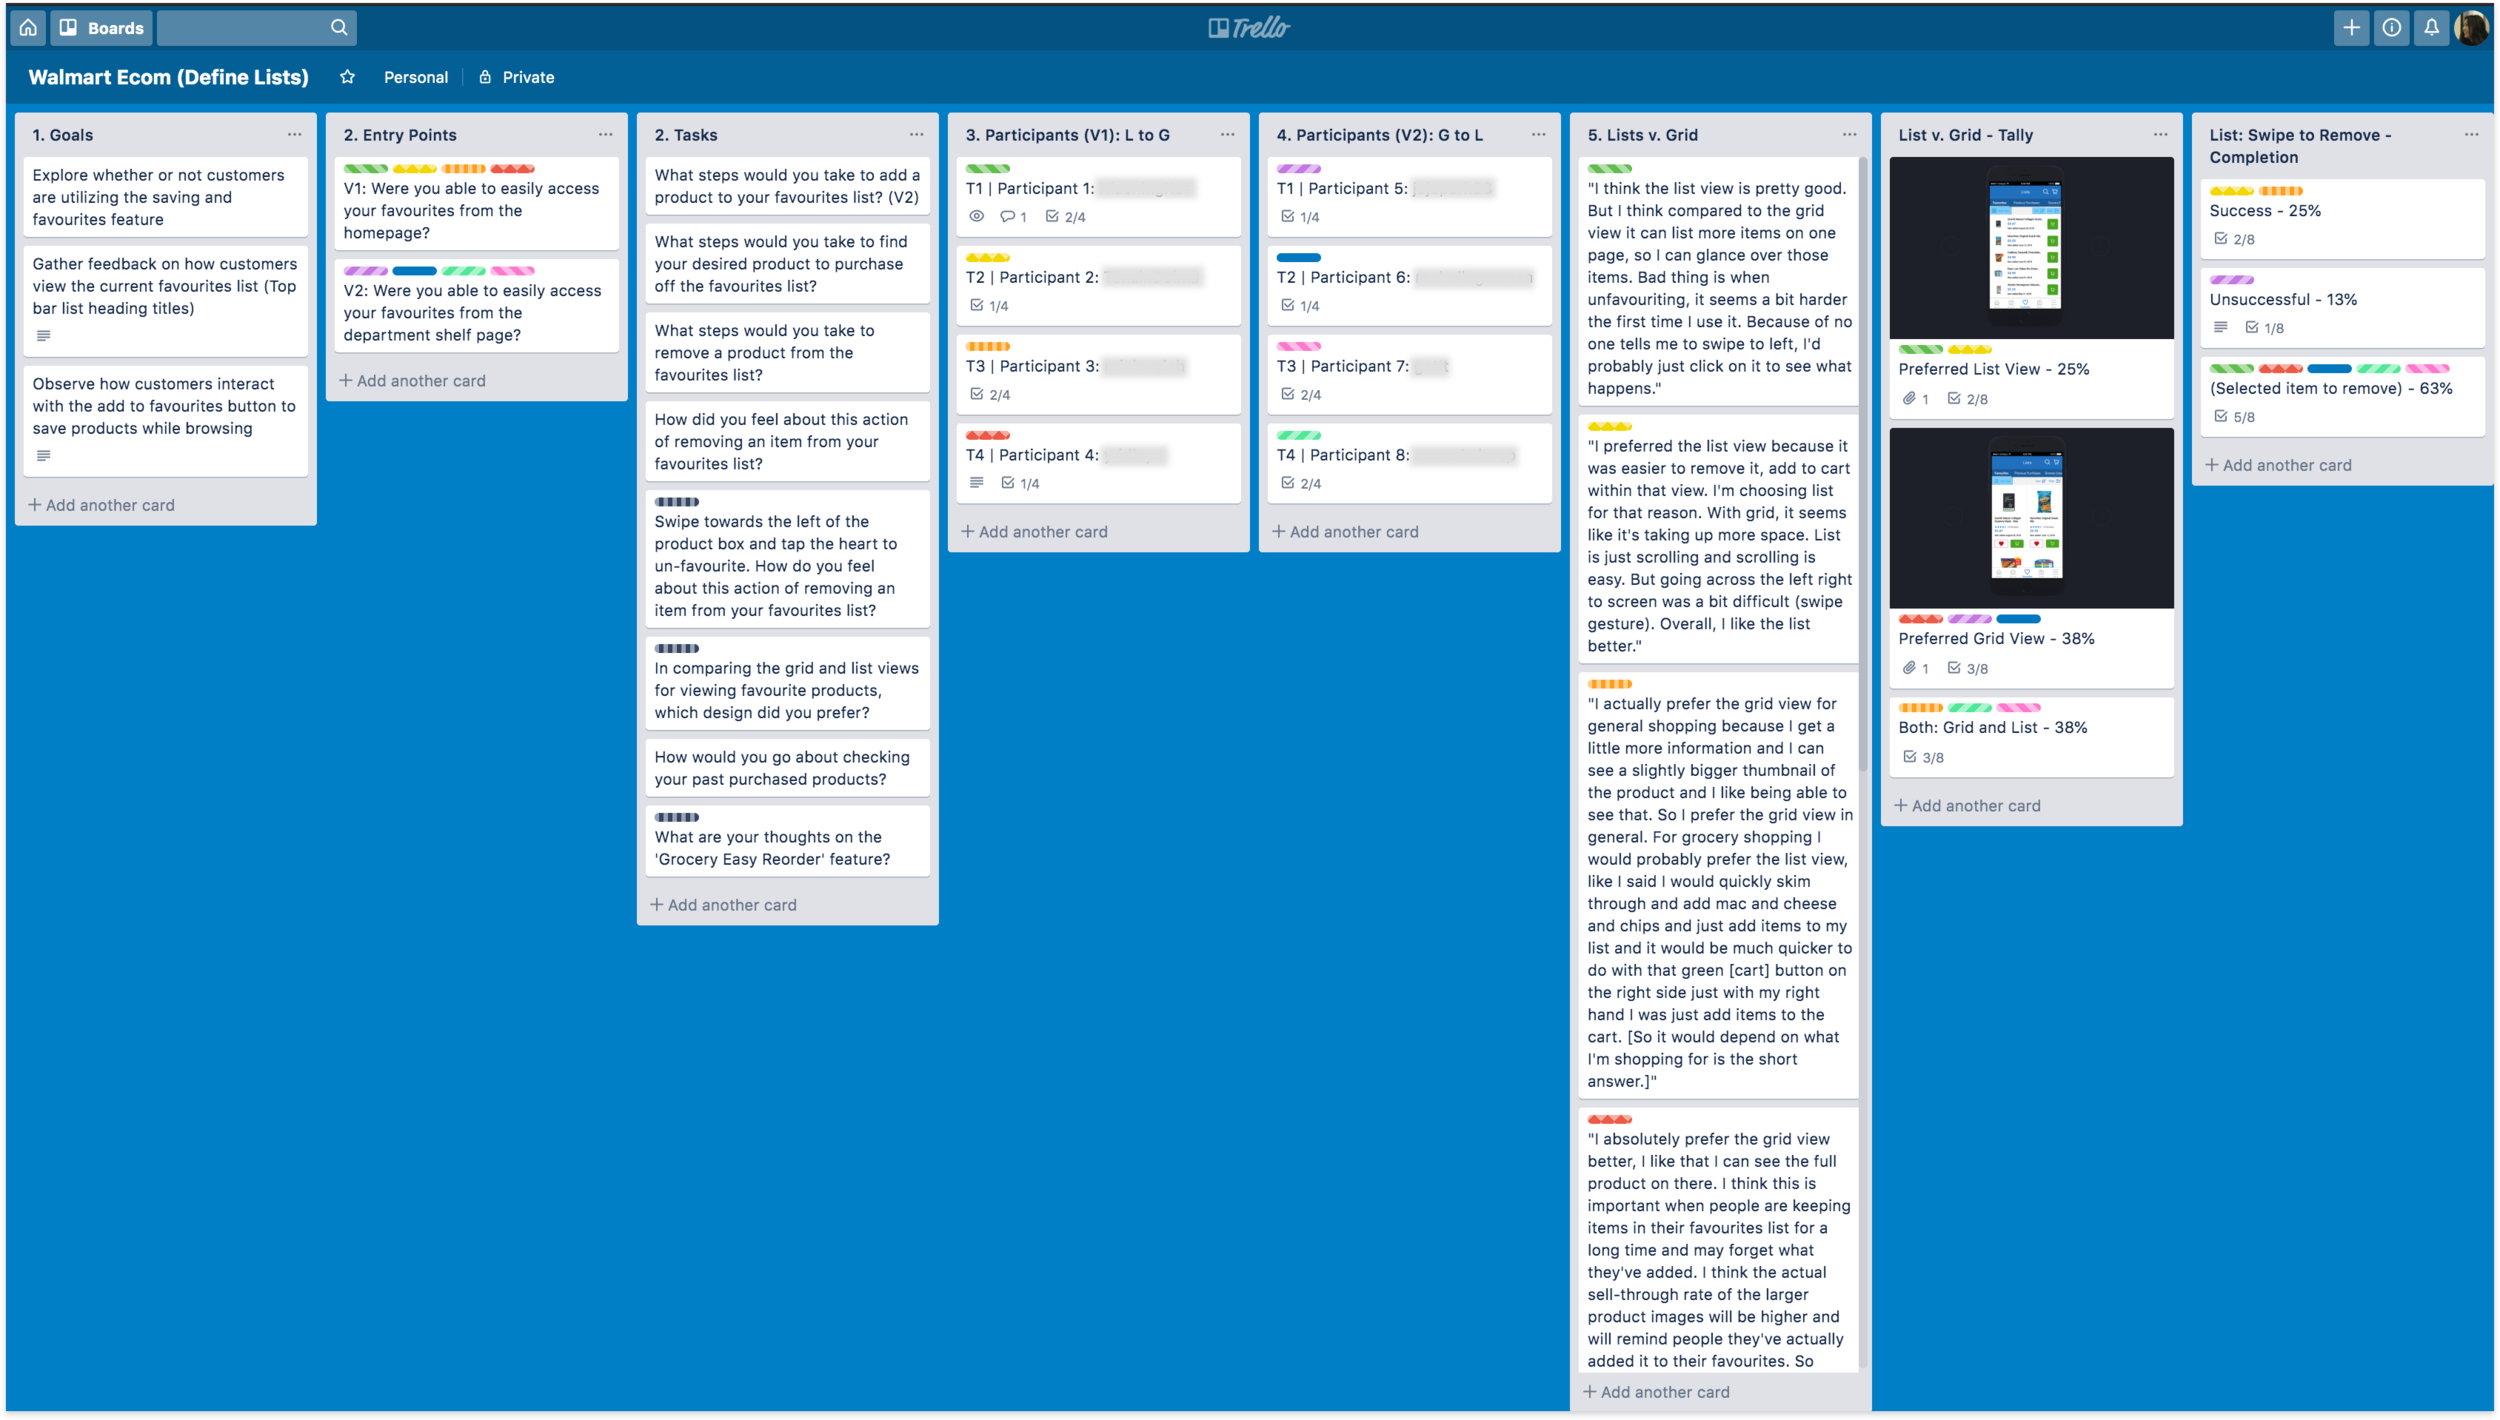 Trello - synthesizing and comparing research results with team